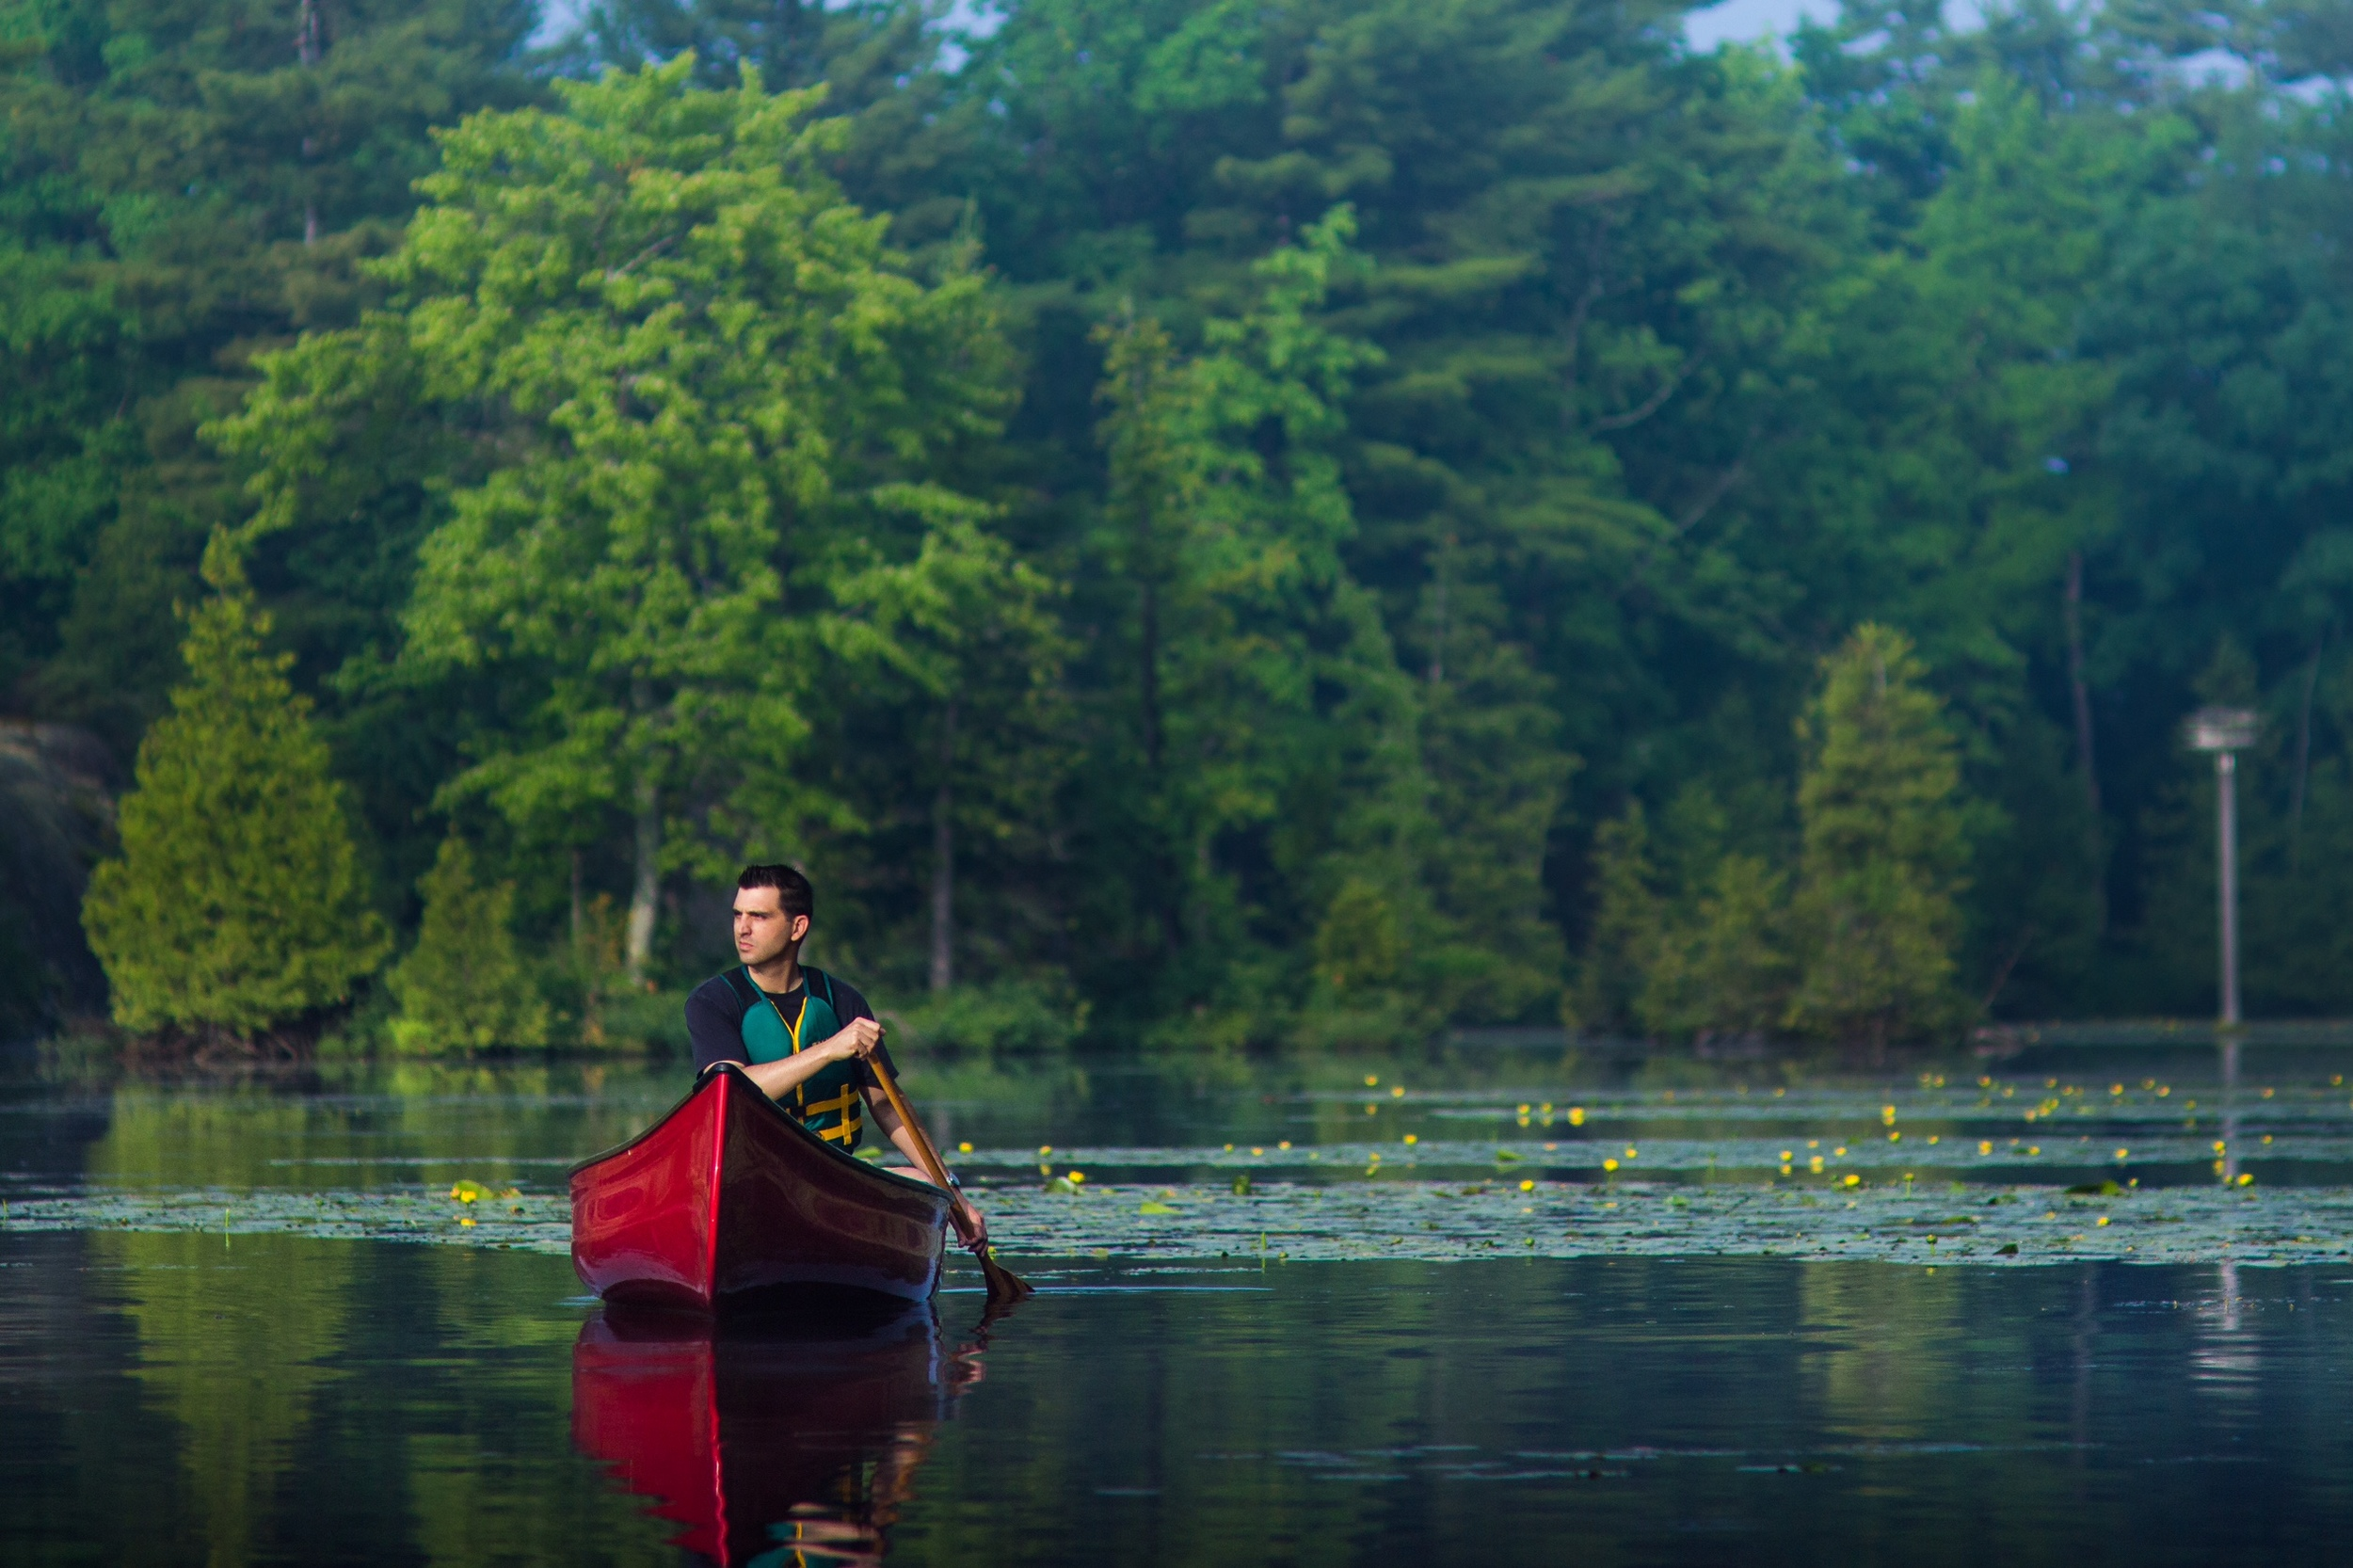 Andrew loves to be on the water—whether it's work or leisure time